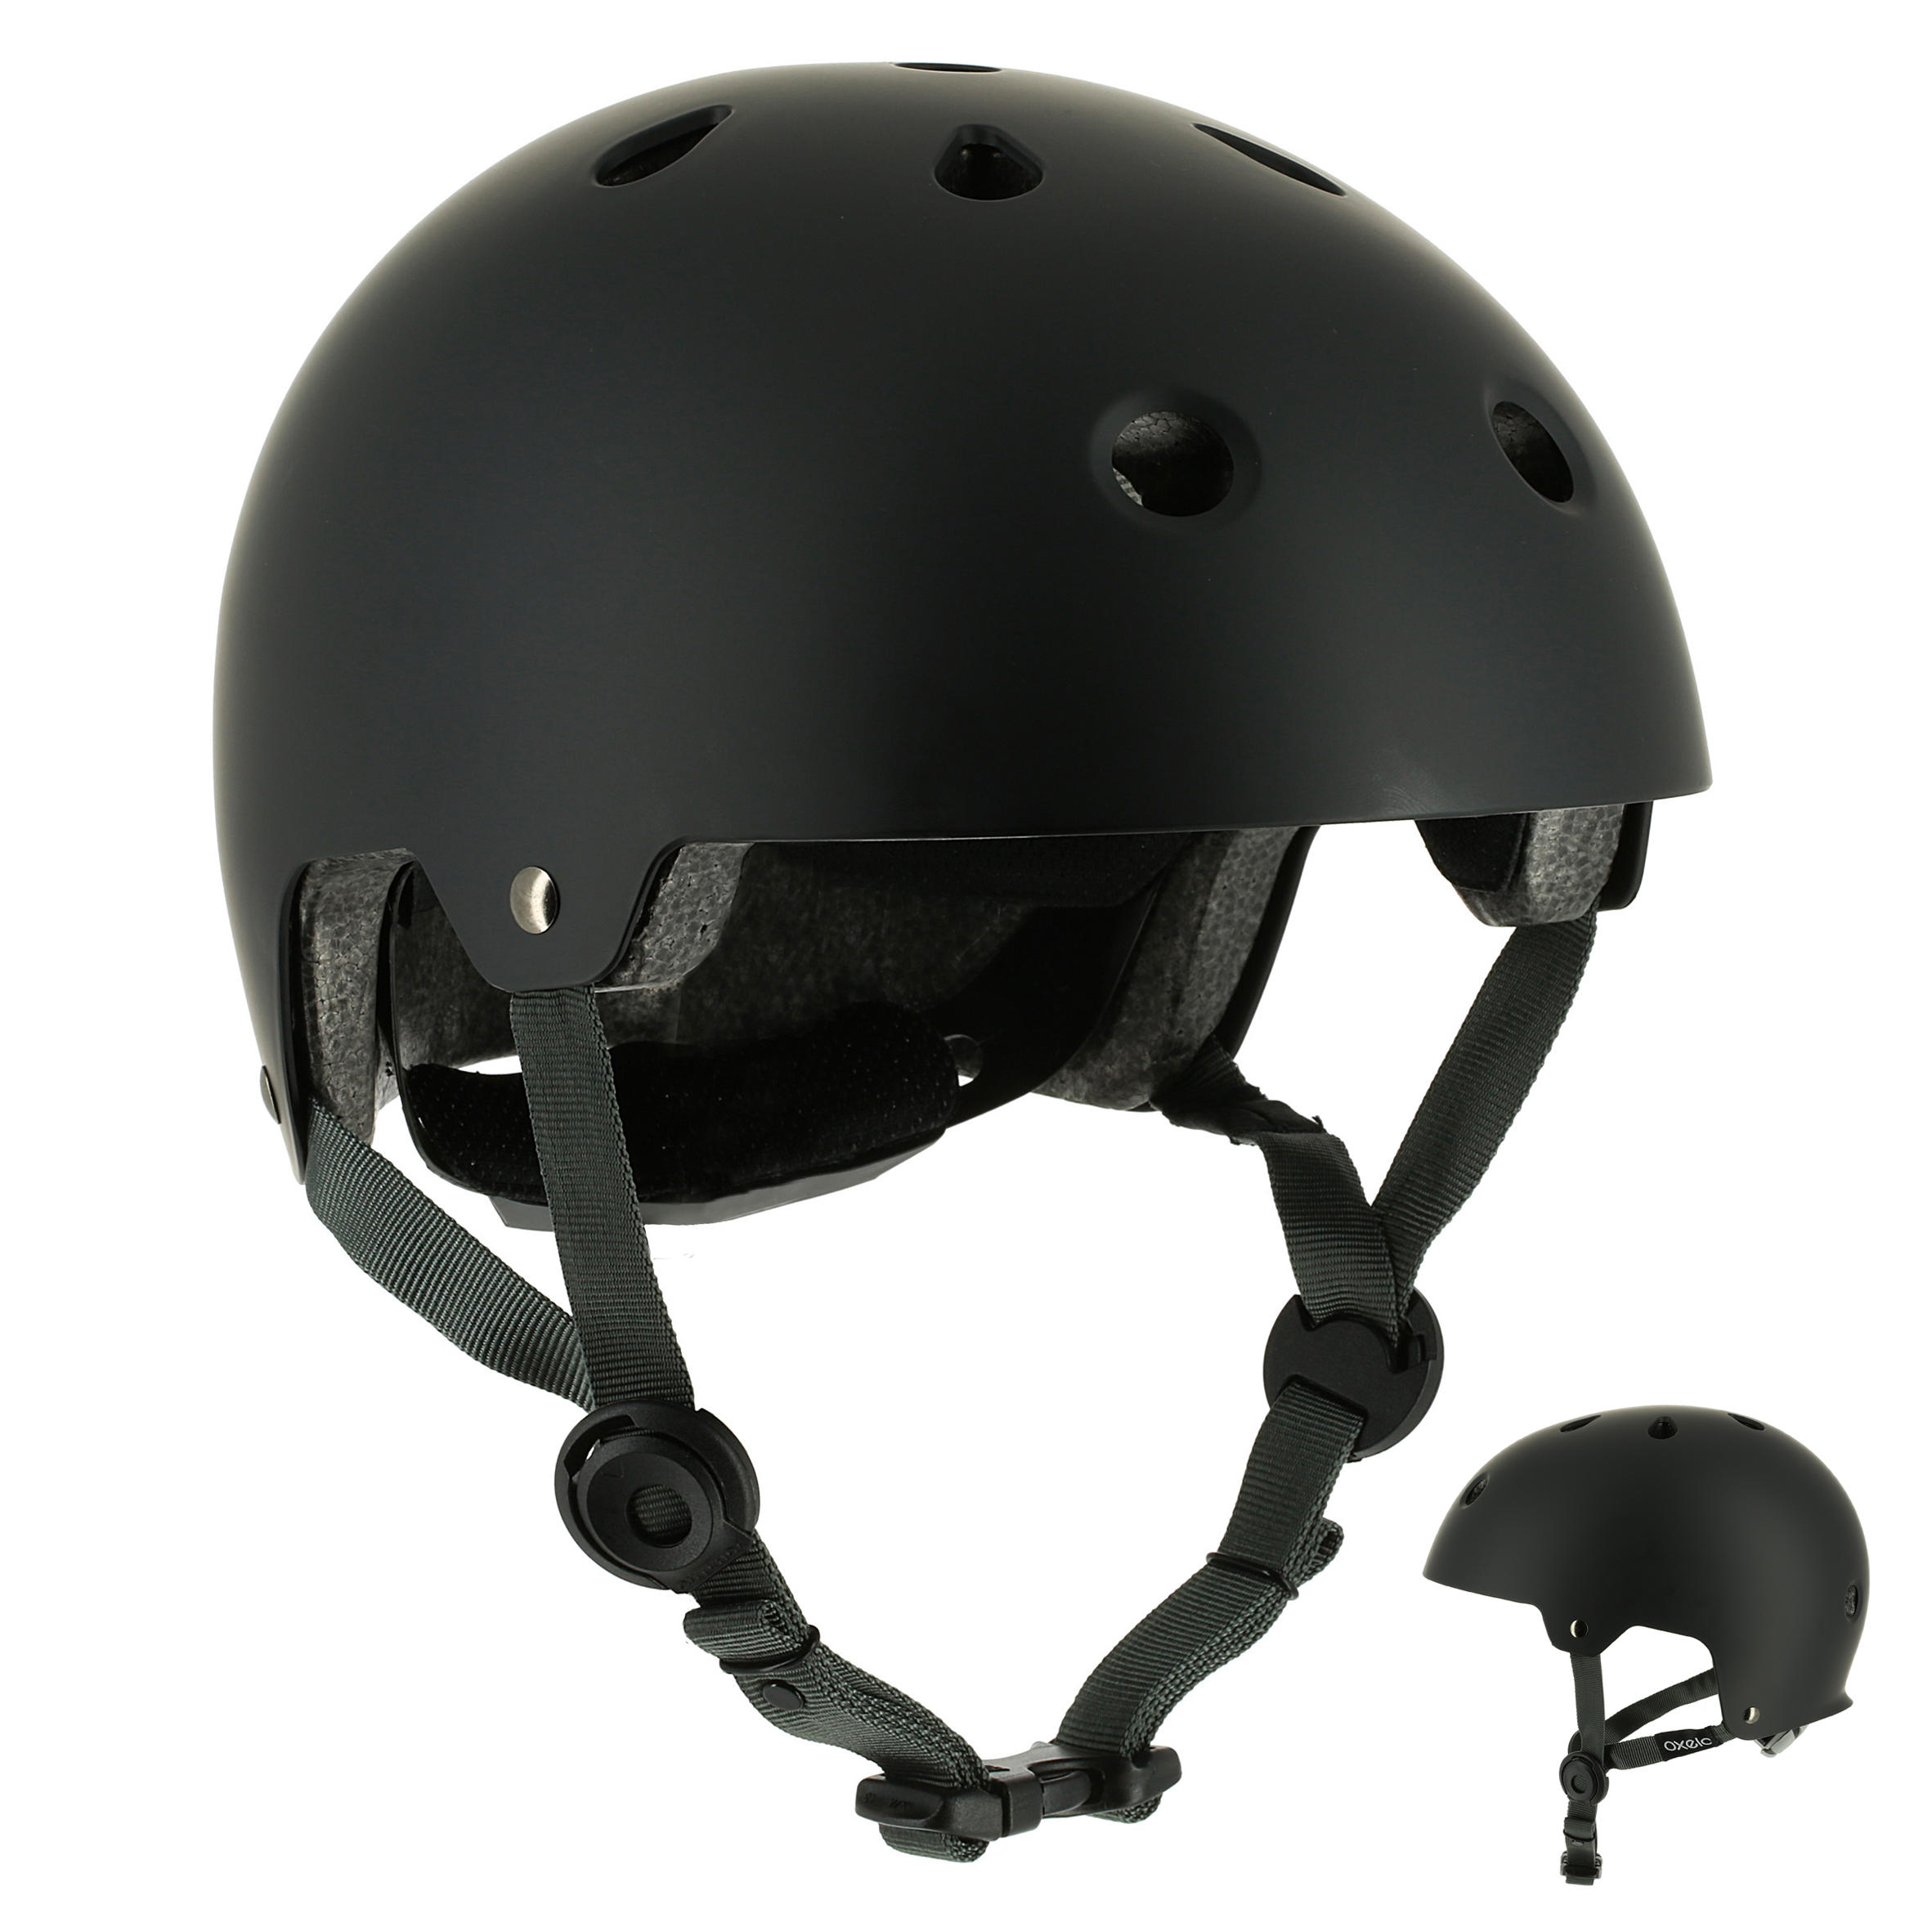 Play 5 Helmet for Skating Skateboarding Scootering Cycling - Black